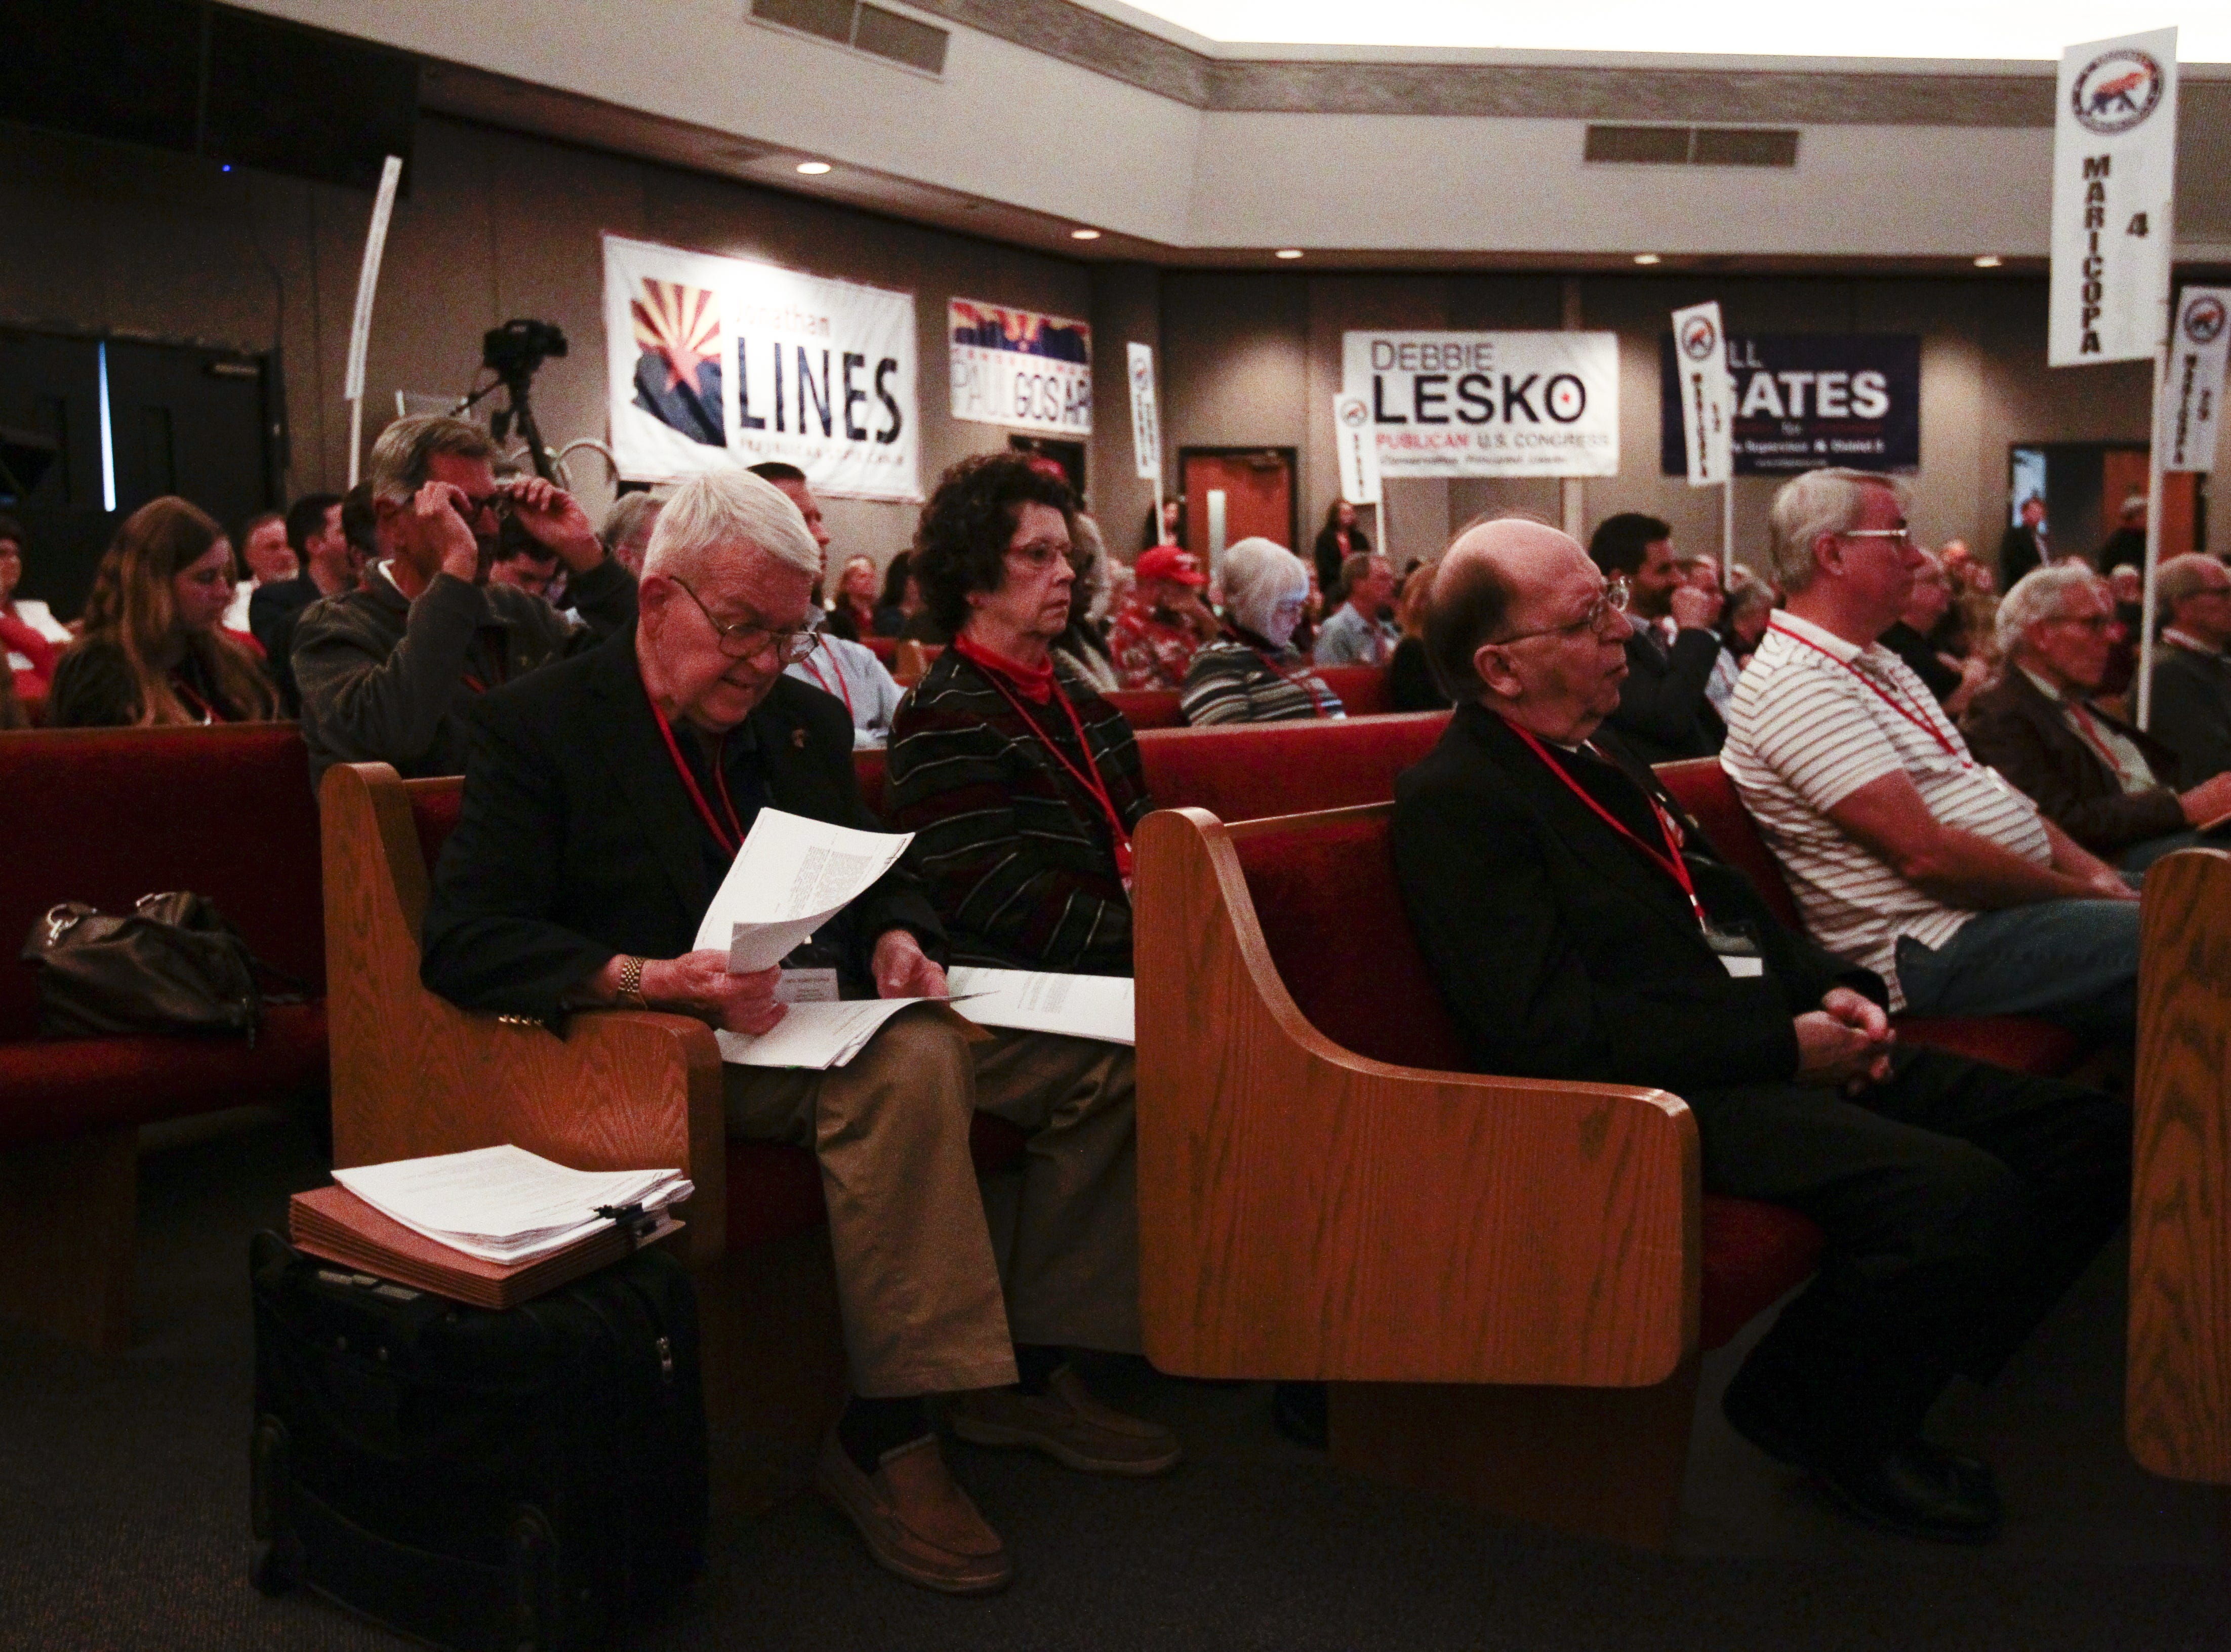 The crowd listens to speakers during the Statutory Meeting of the State Committee of the Arizona Republican Party at Church for the Nations on Saturday, Jan. 26, 2019.